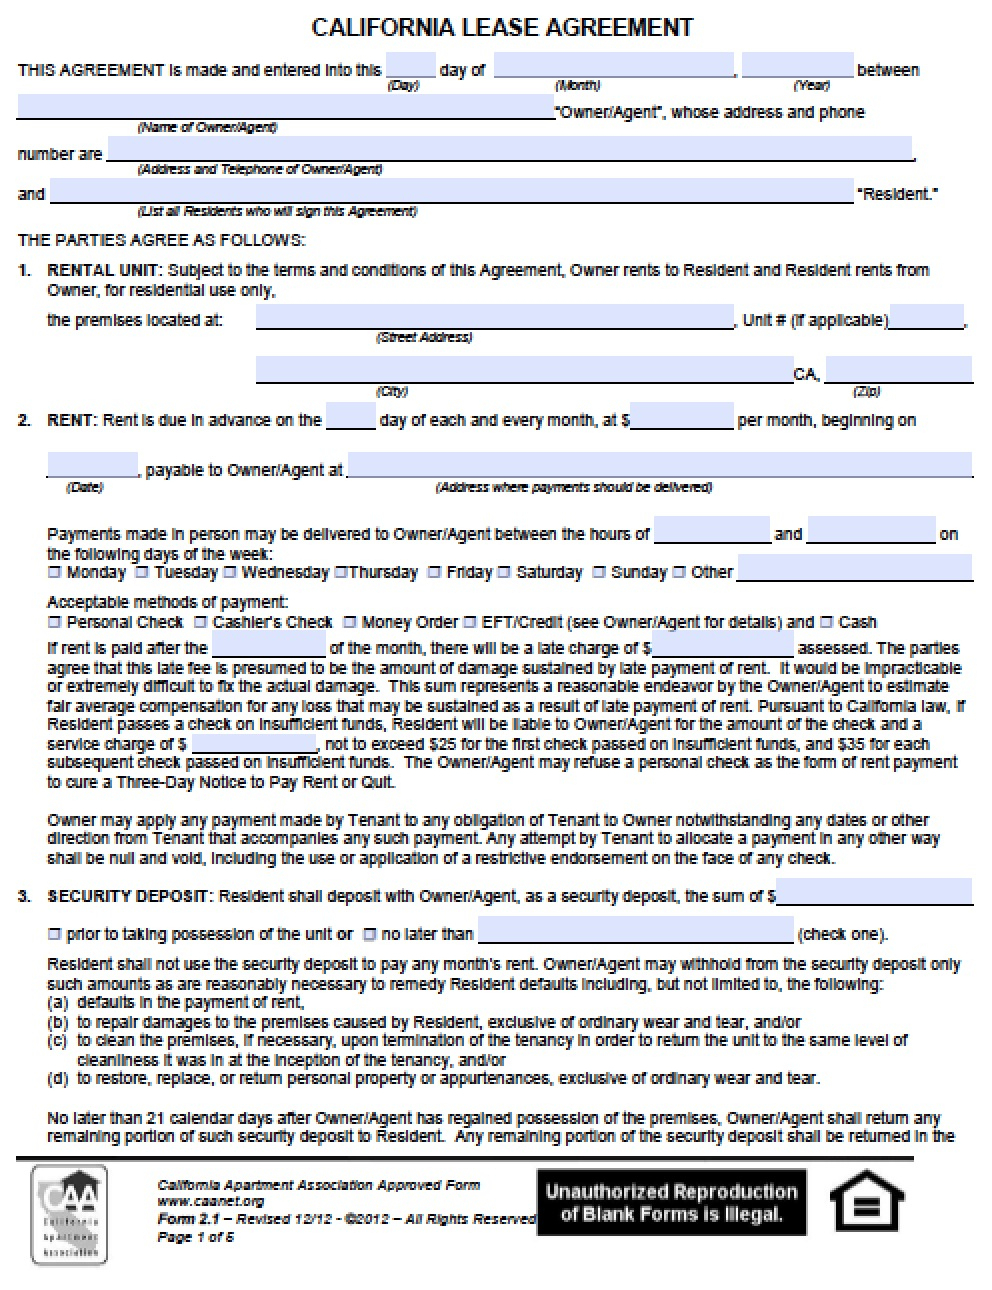 Free California Residential Lease Agreement | Pdf | Word (.doc) - Free Printable California Residential Lease Agreement